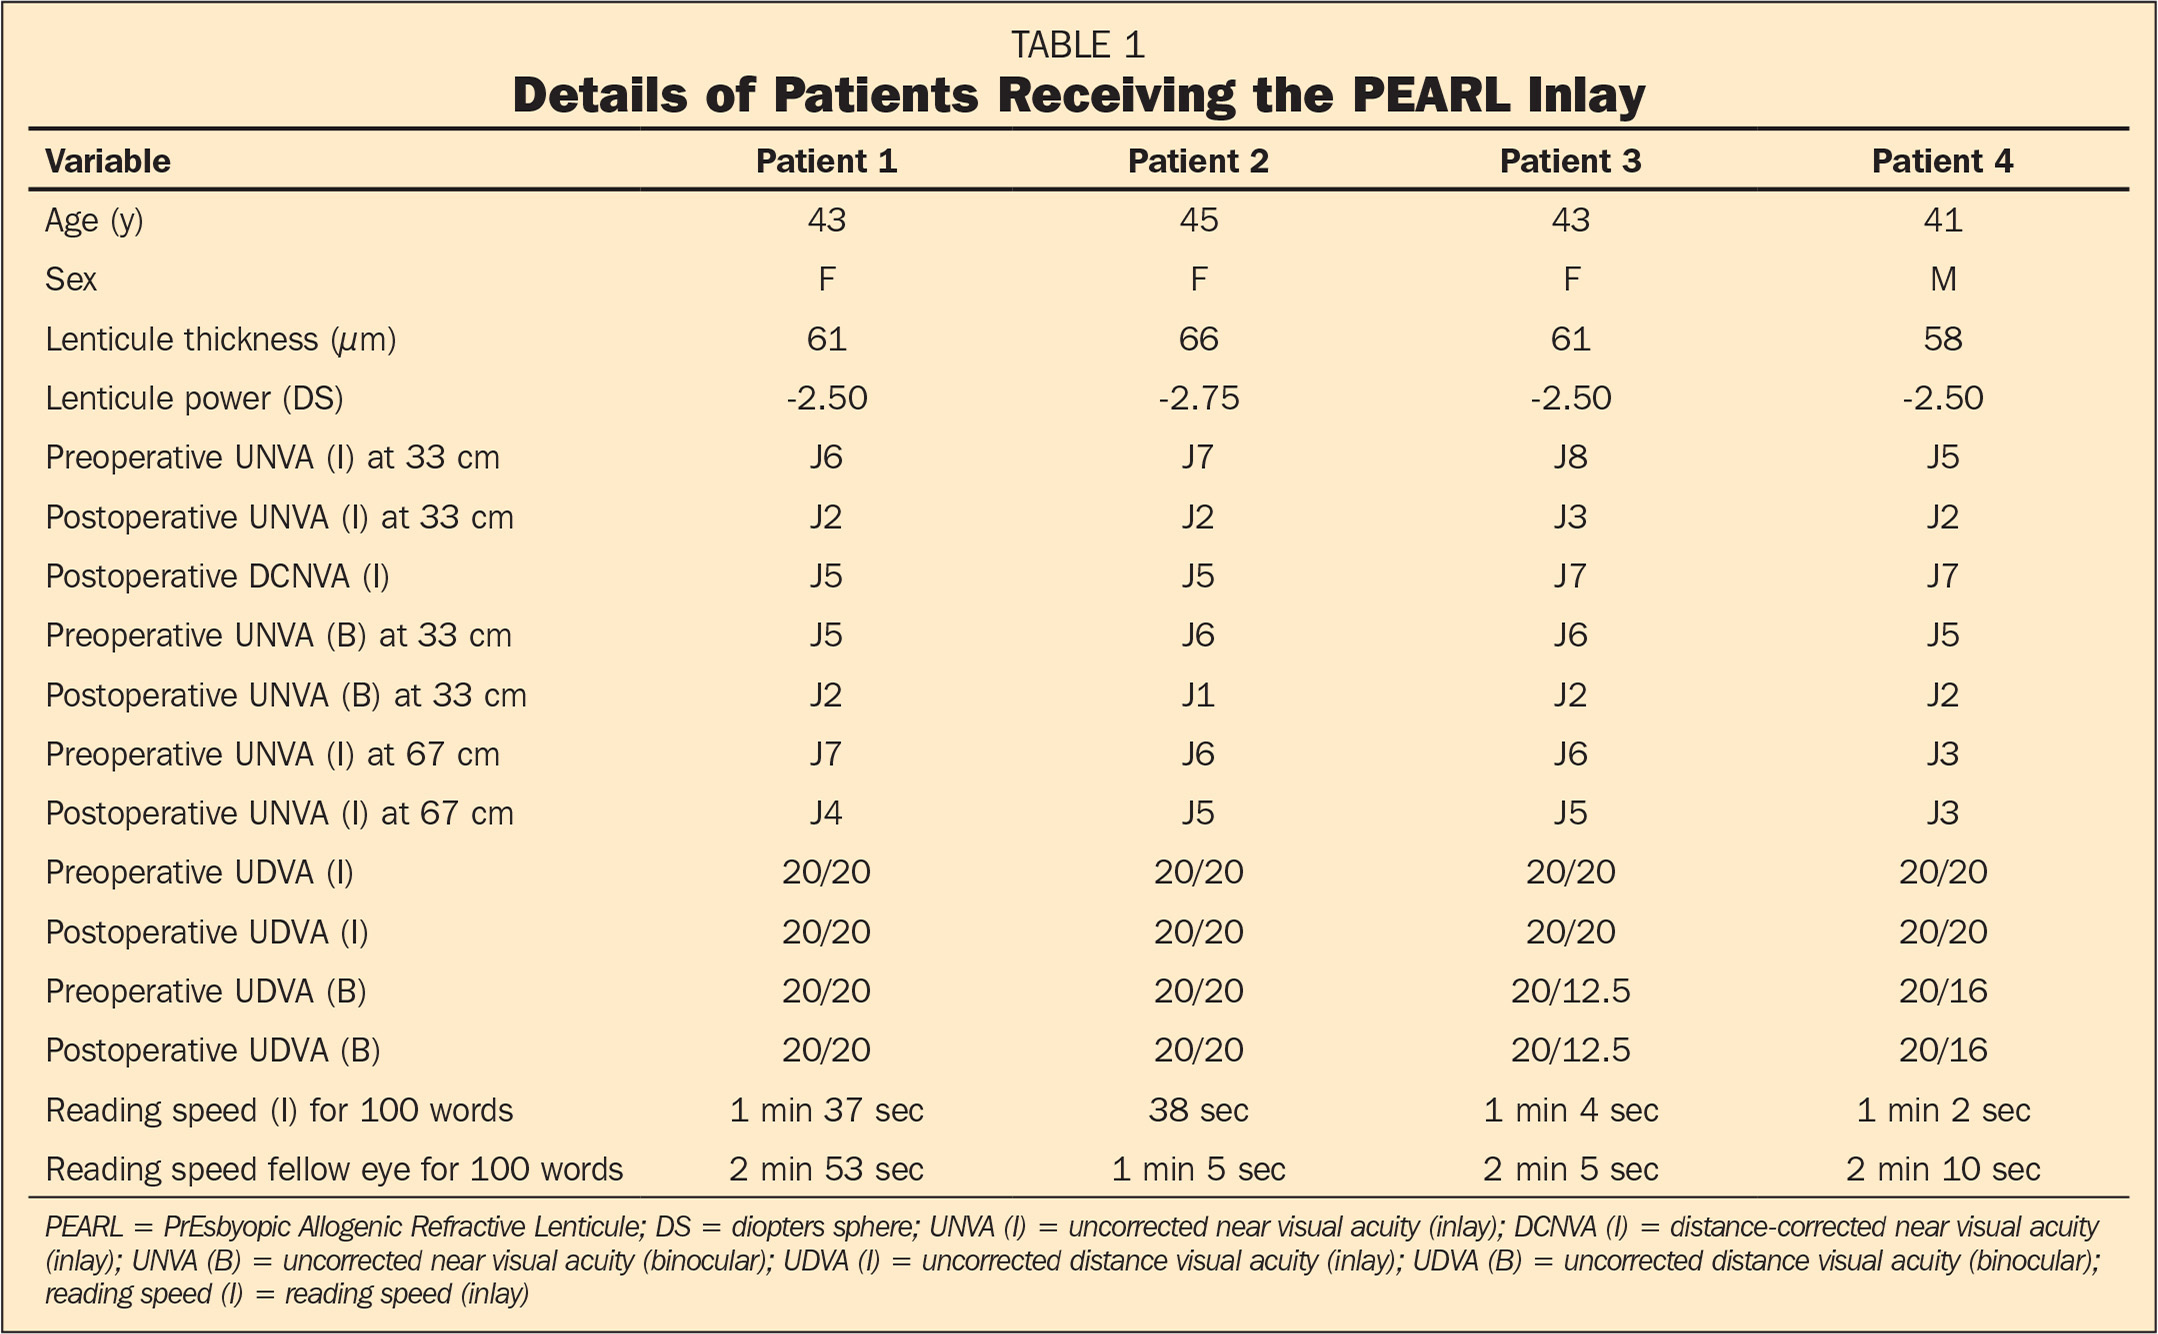 Details of Patients Receiving the PEARL Inlay